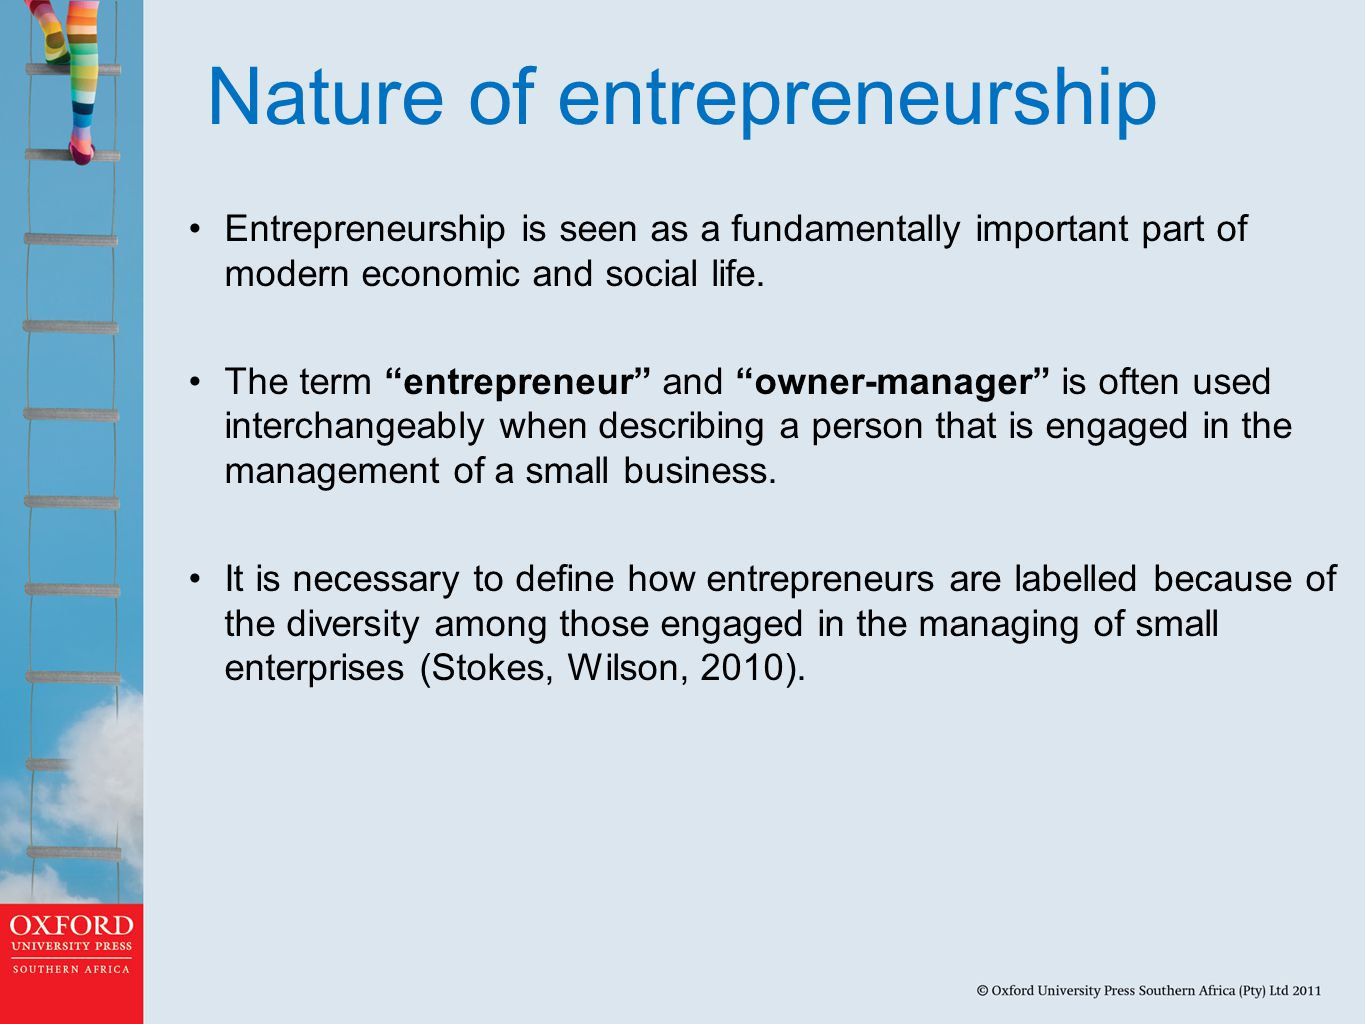 What is an entrepreneurial definition